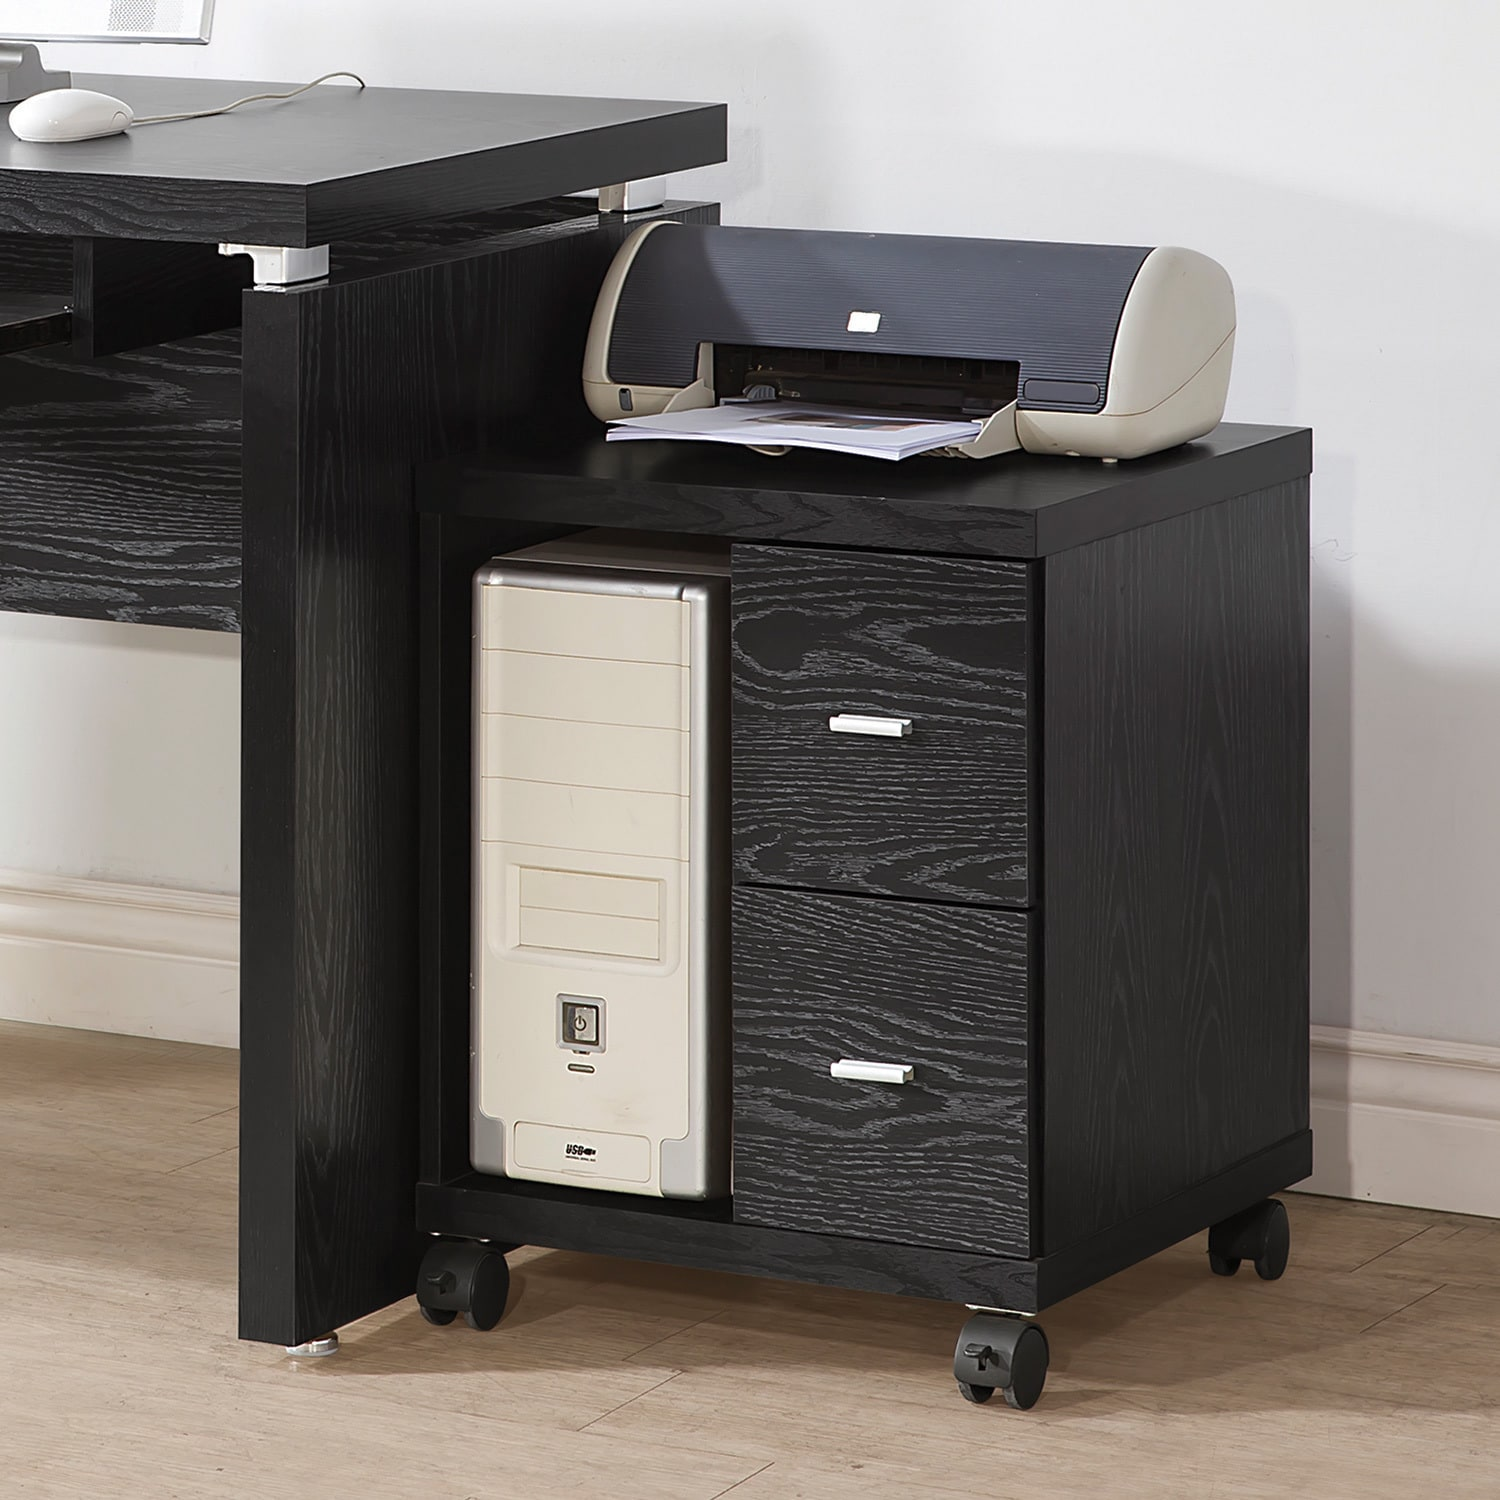 two locking online drawer file x small staples filing for drawers wooden coloured lateral sale legal cabinets with oak bar cabinet lock metal throughout black measurements effect furniture office depot buy